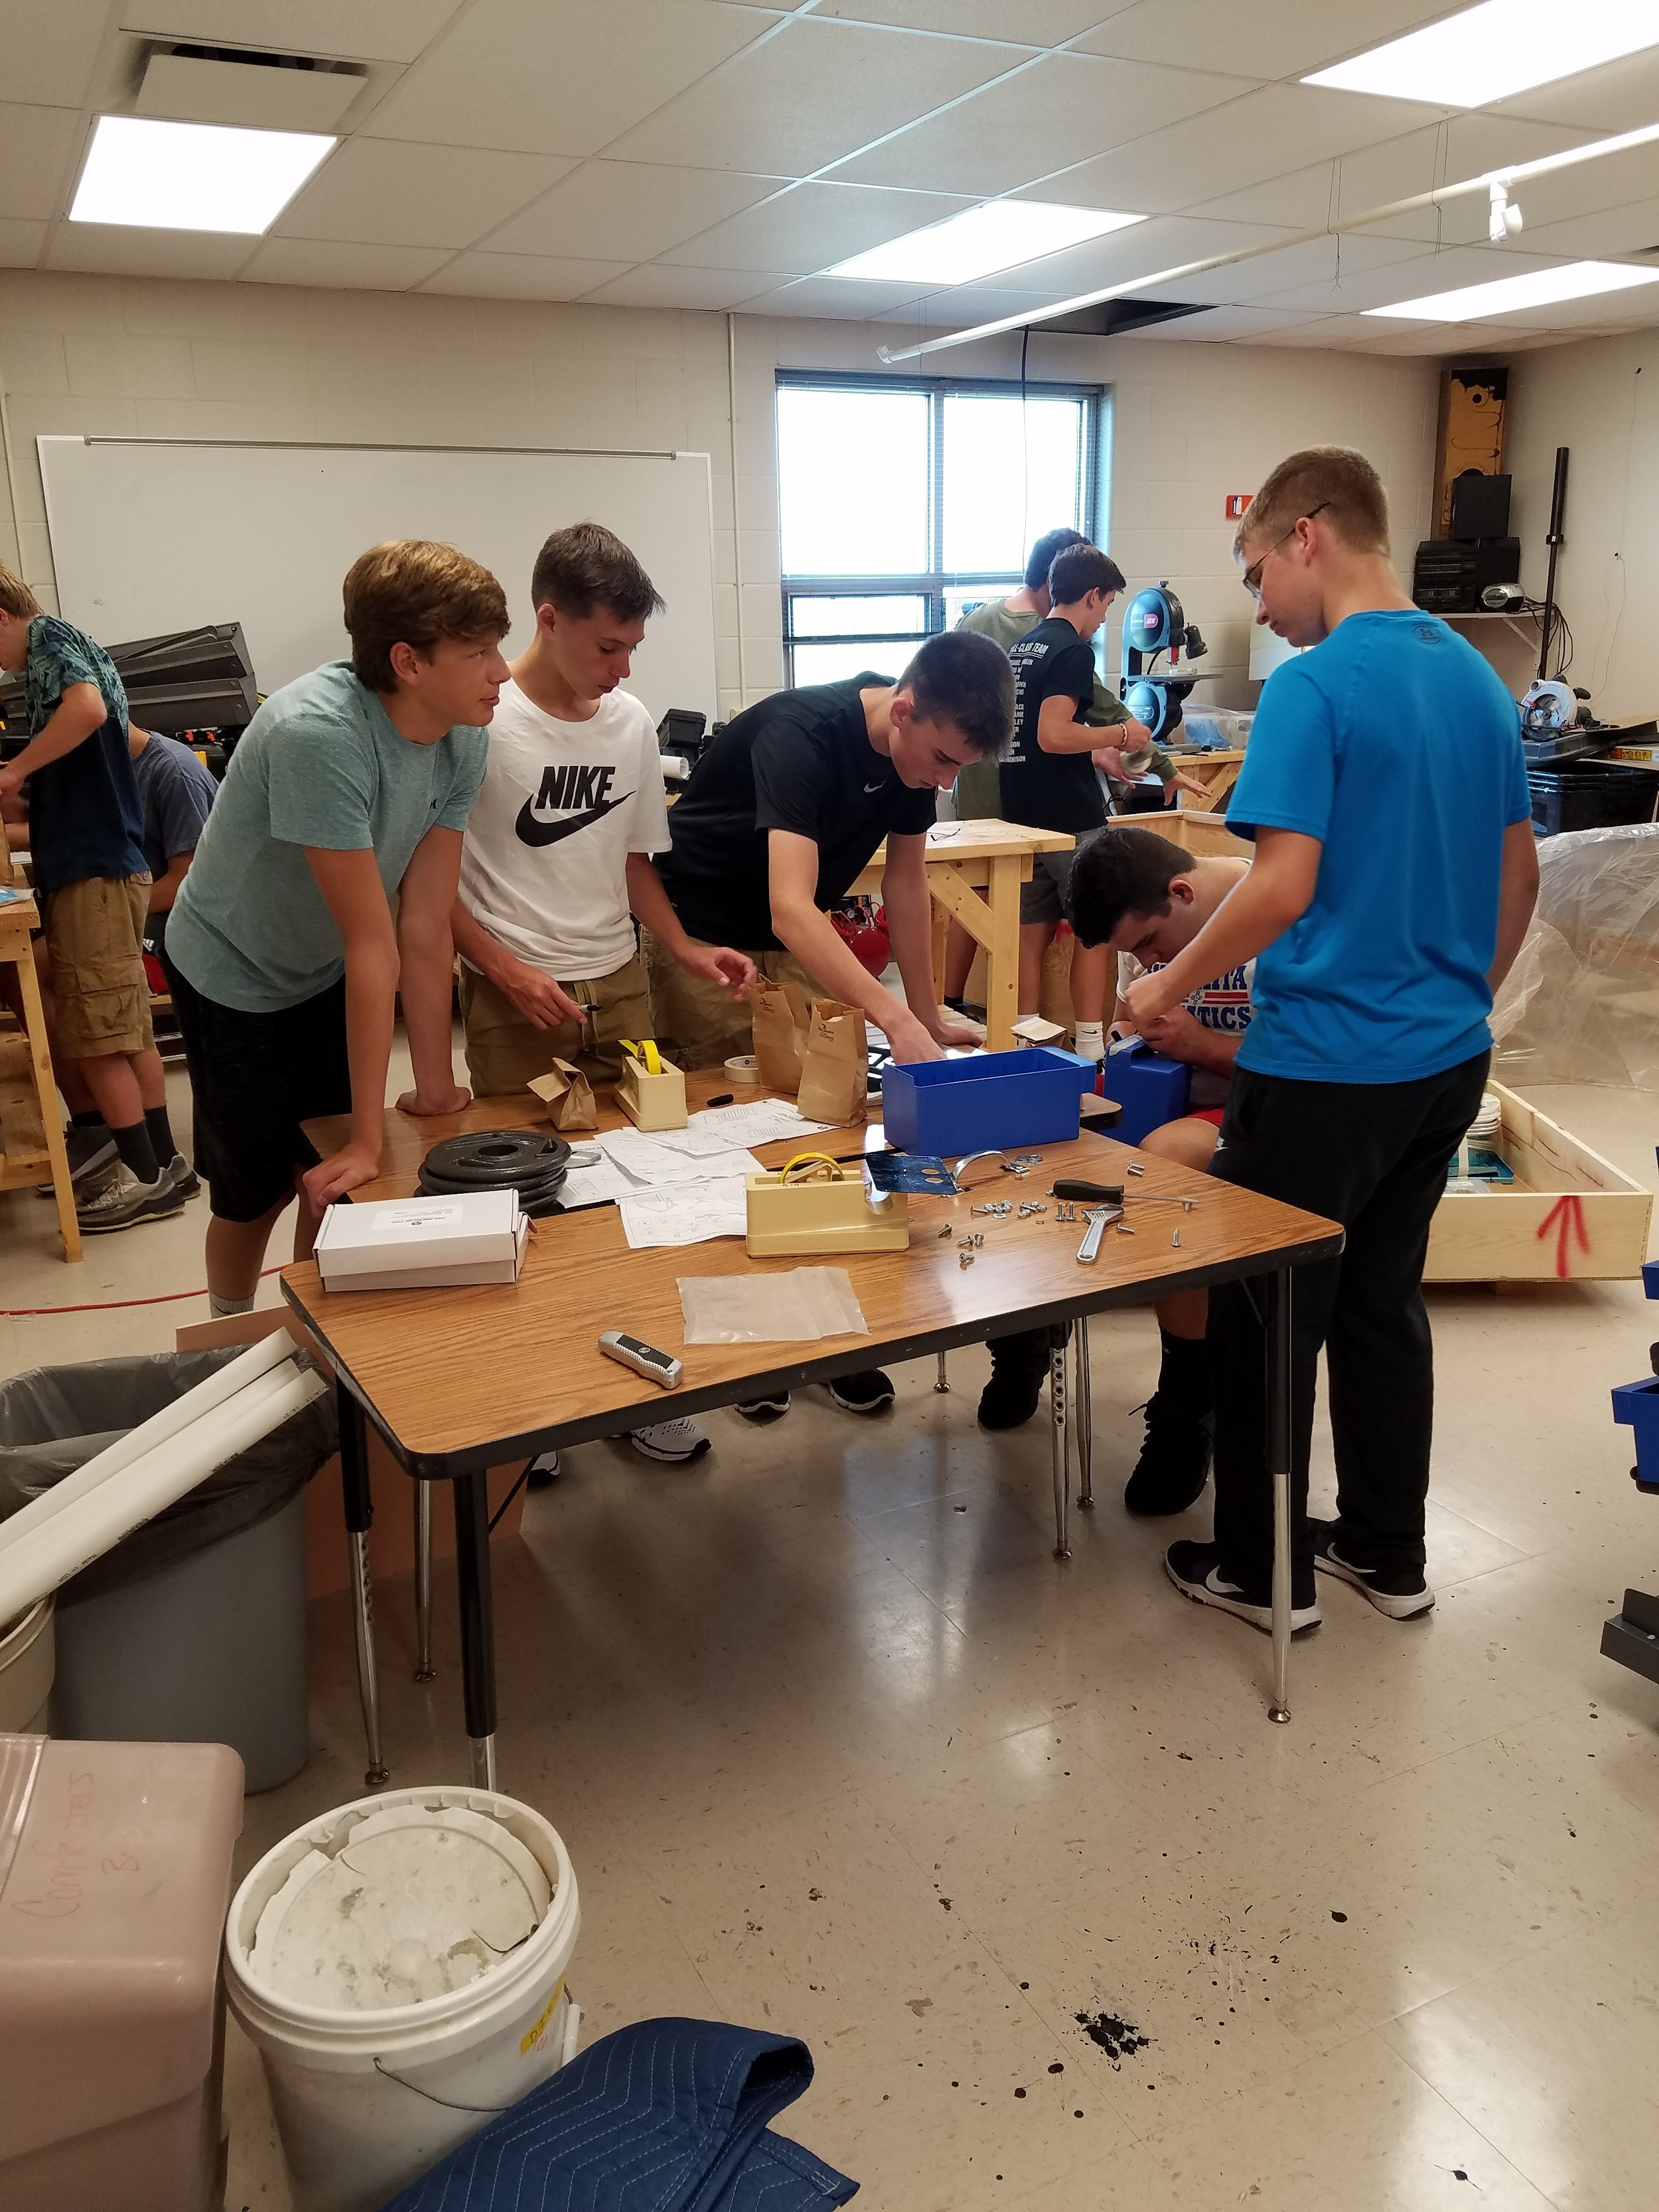 Engineering students work together on a project.